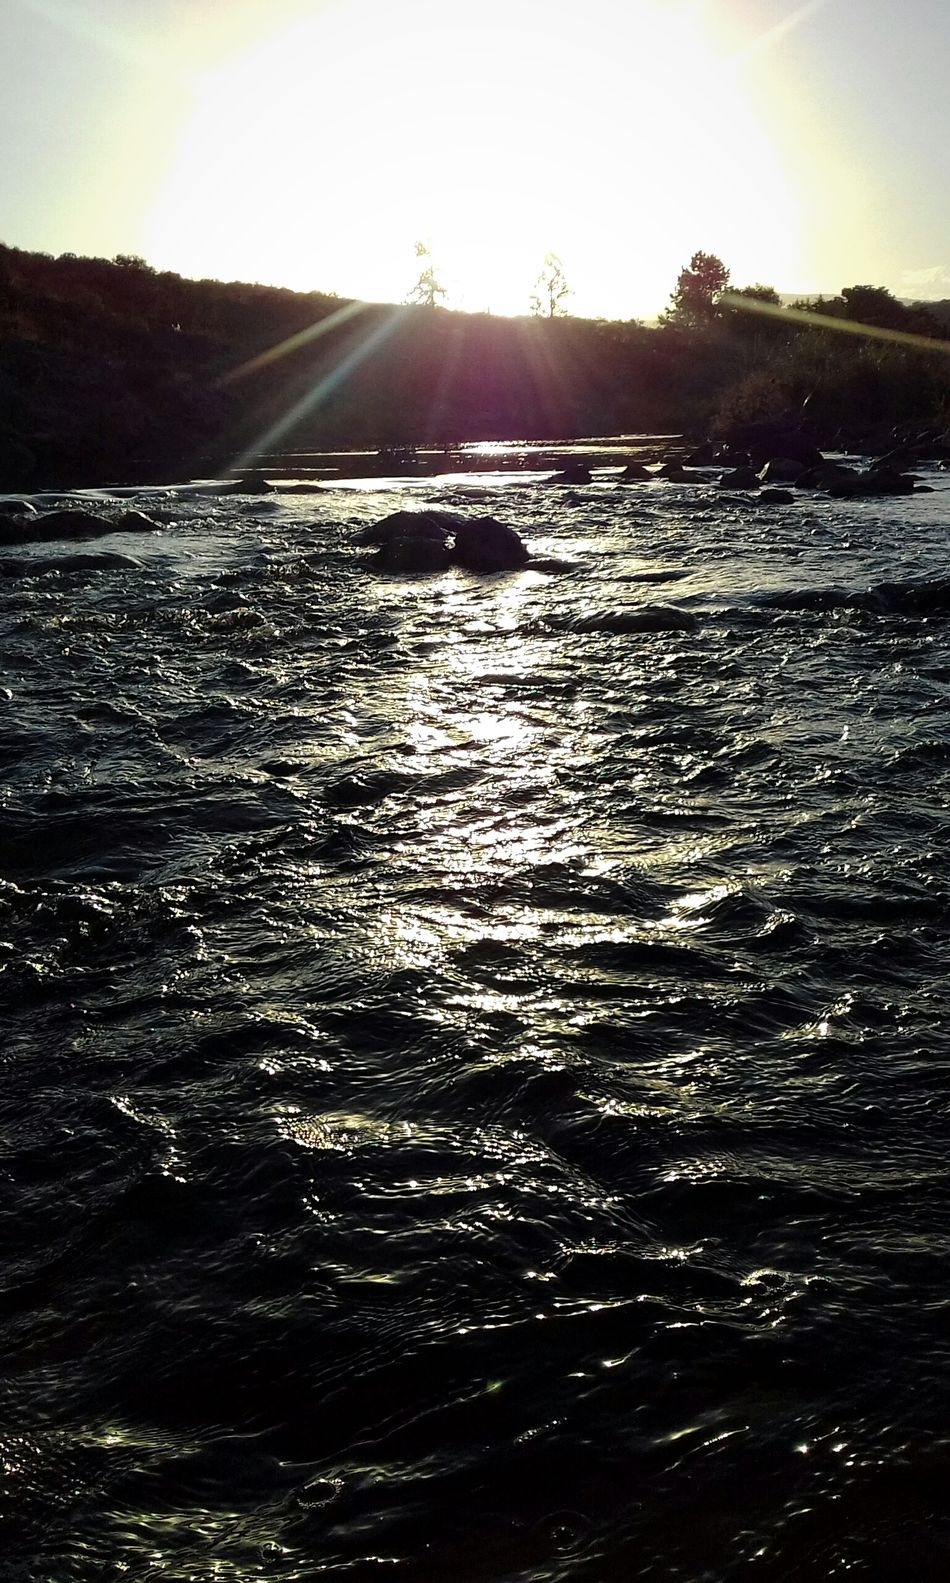 Water Nature Beauty In Nature Sky Sunset Sunlight Outdoors Tranquility Sea Landscape Tranquil Scene Horizont  Walking Nature Peace Beautiful Woow River Riverside Camp Camping The City Light